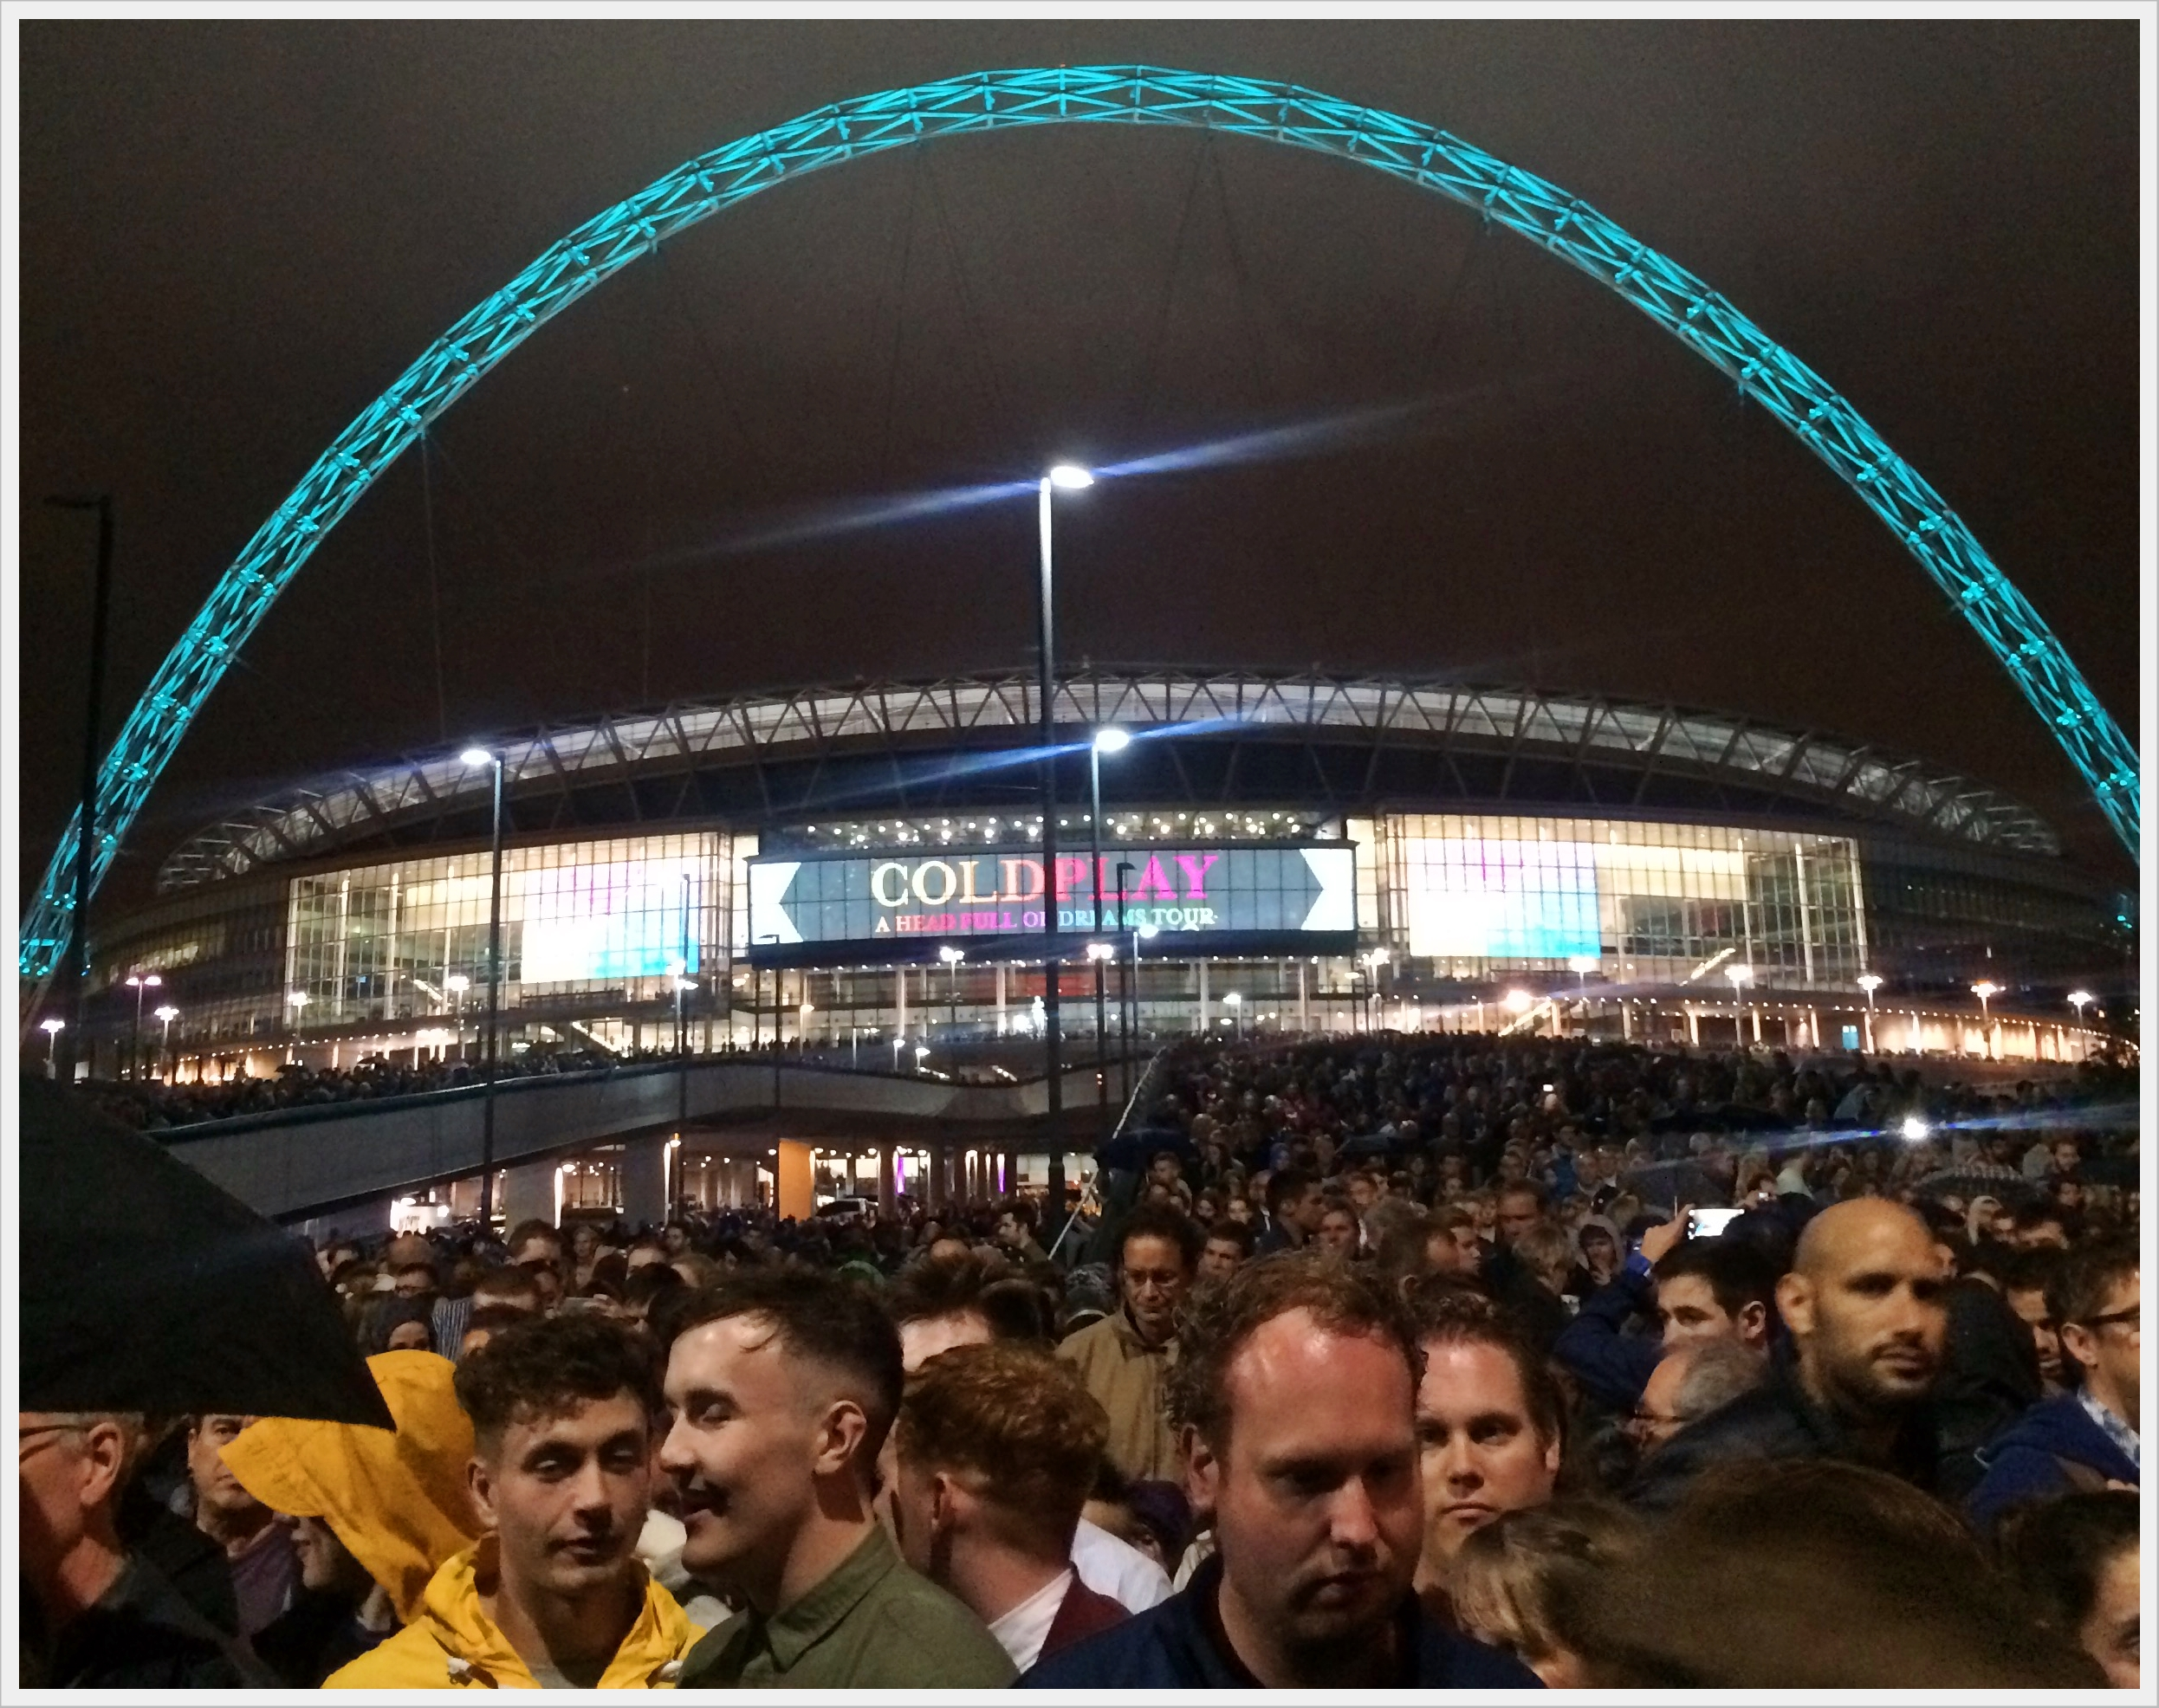 09_2016 - Coldplay at Wembley